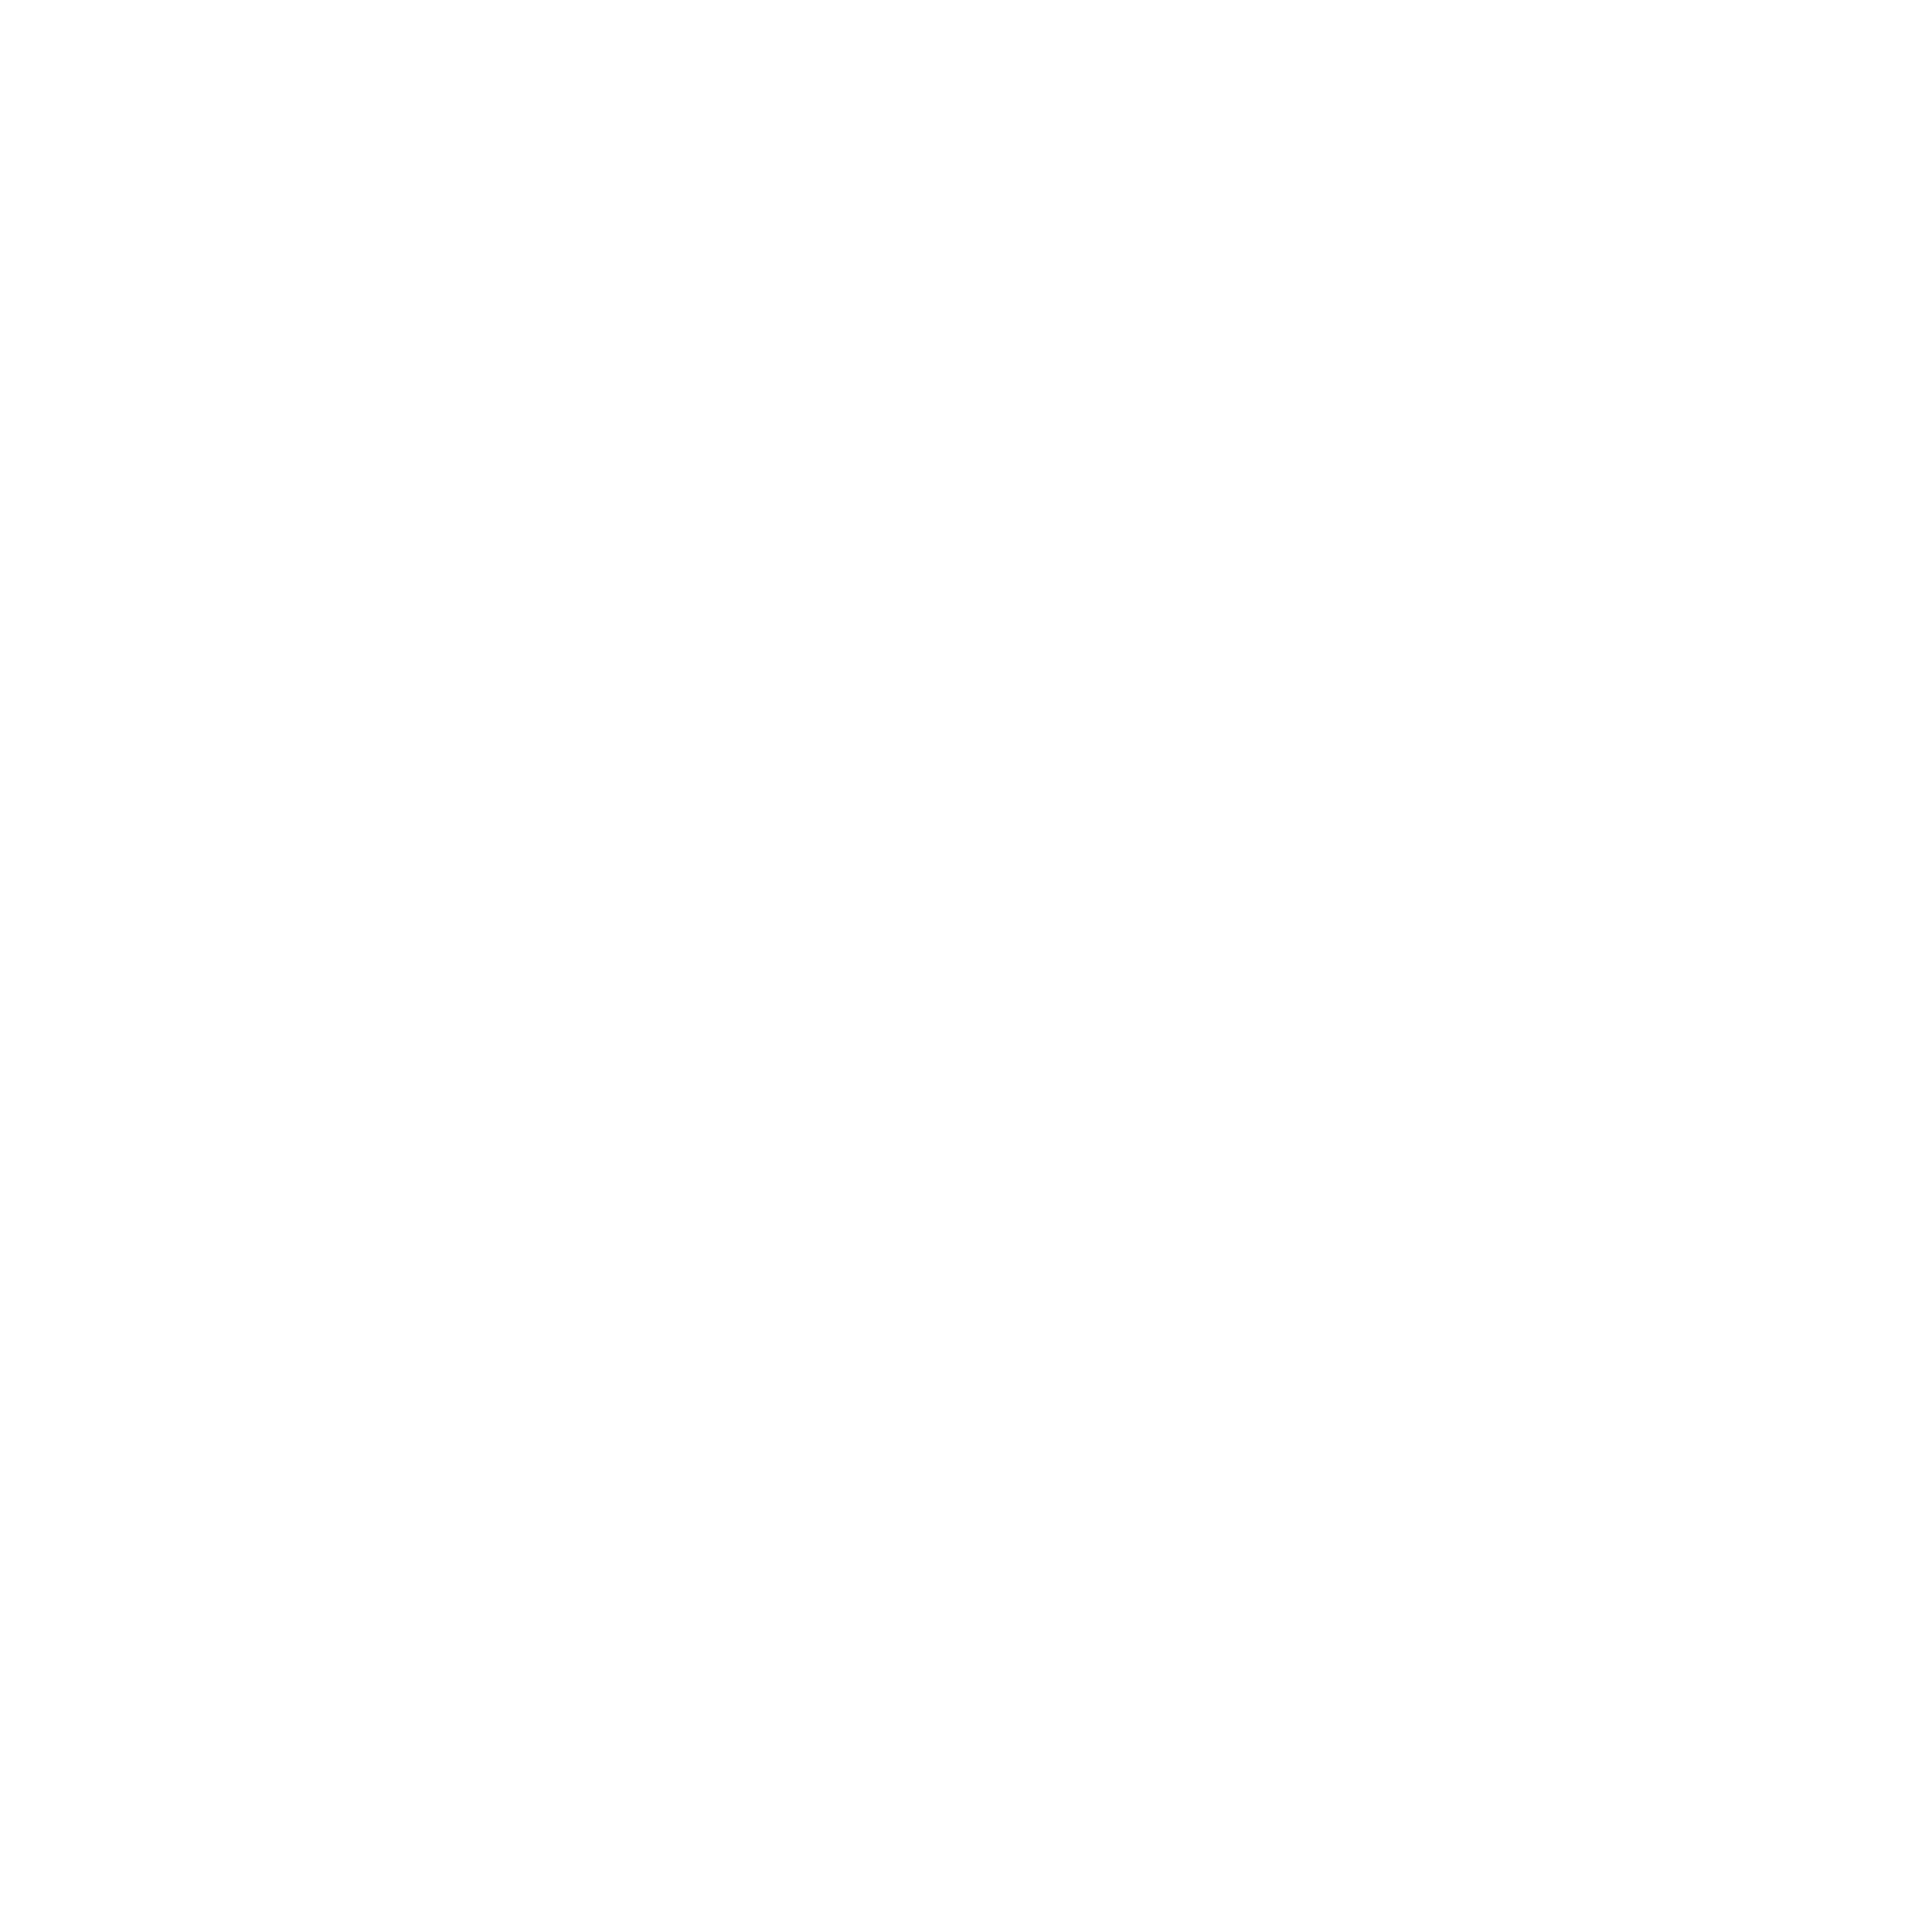 Ascent Fostering Agency